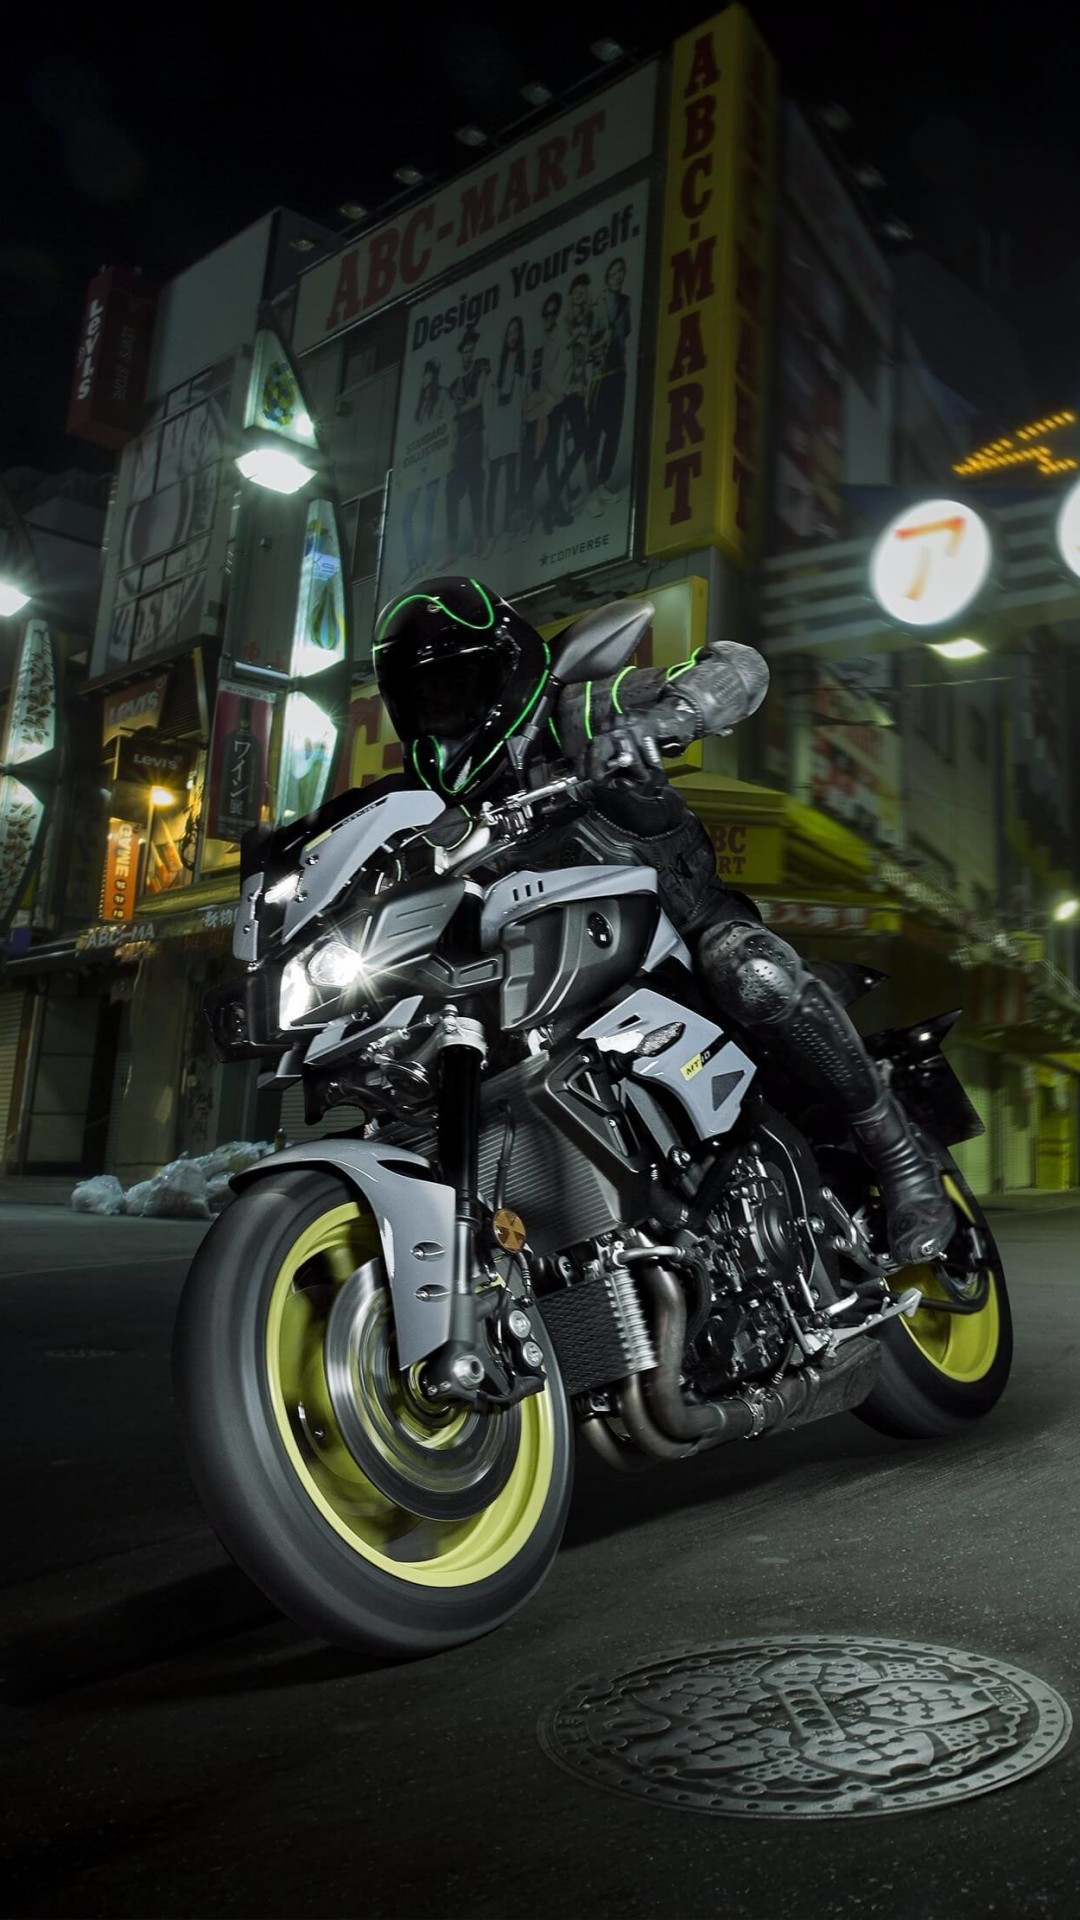 Yamaha MT-10 Superbike Wallpaper for SONY Xperia Z1